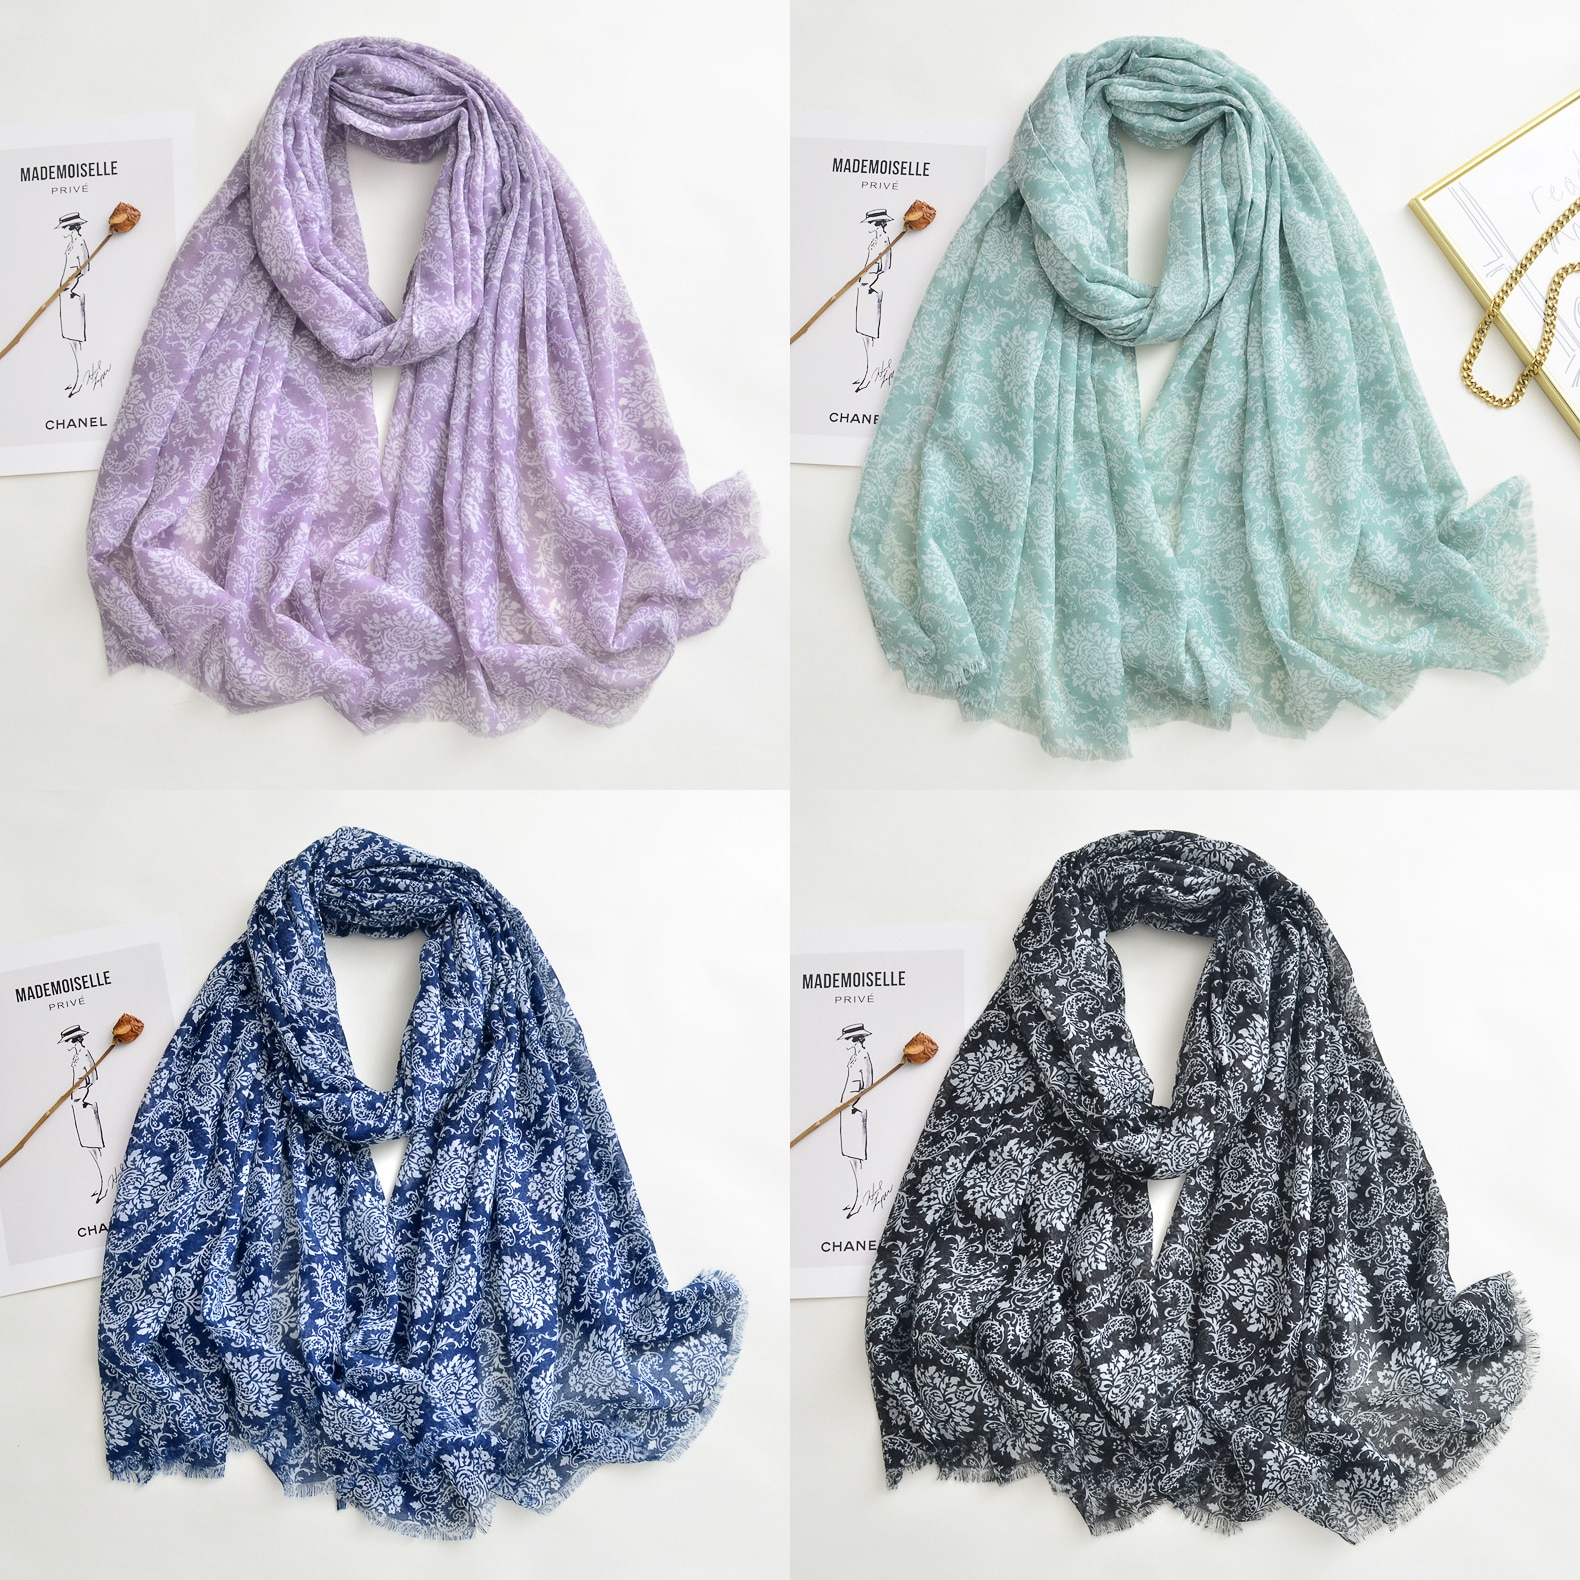 2021 Newest Women Vintage Floral Printed Scarf Cotton Voile Scarf Shawls Wraps Hijabs